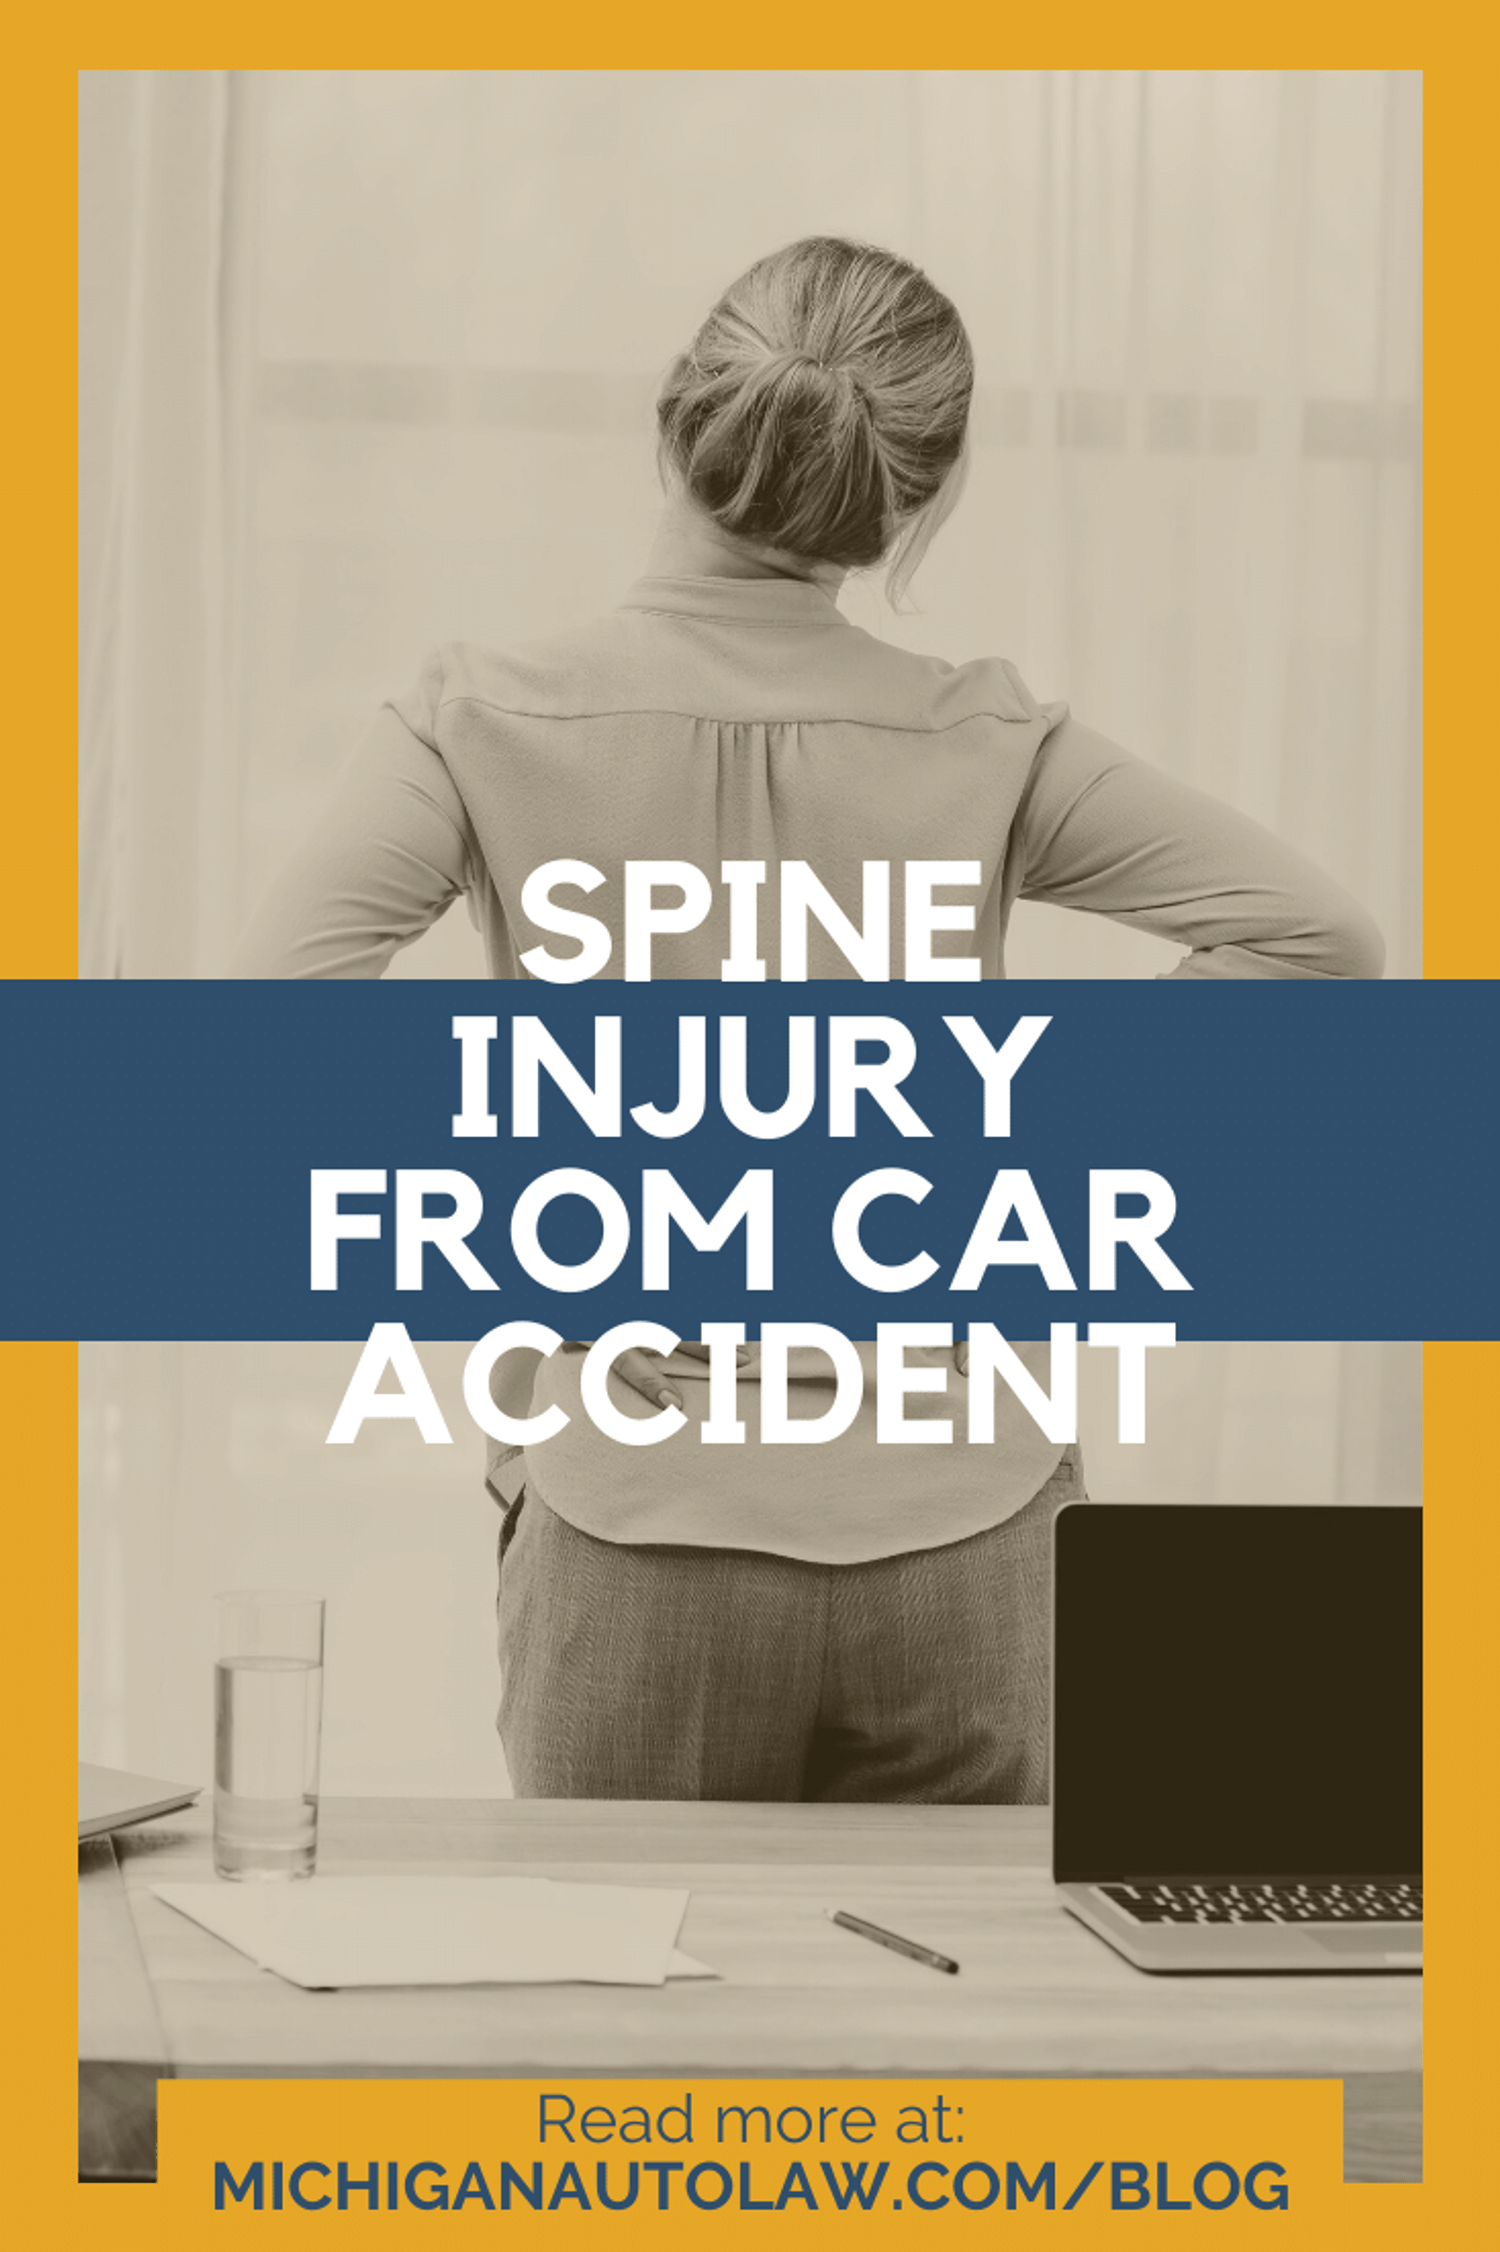 Spine Injury From Car Accident: What You Need To Know